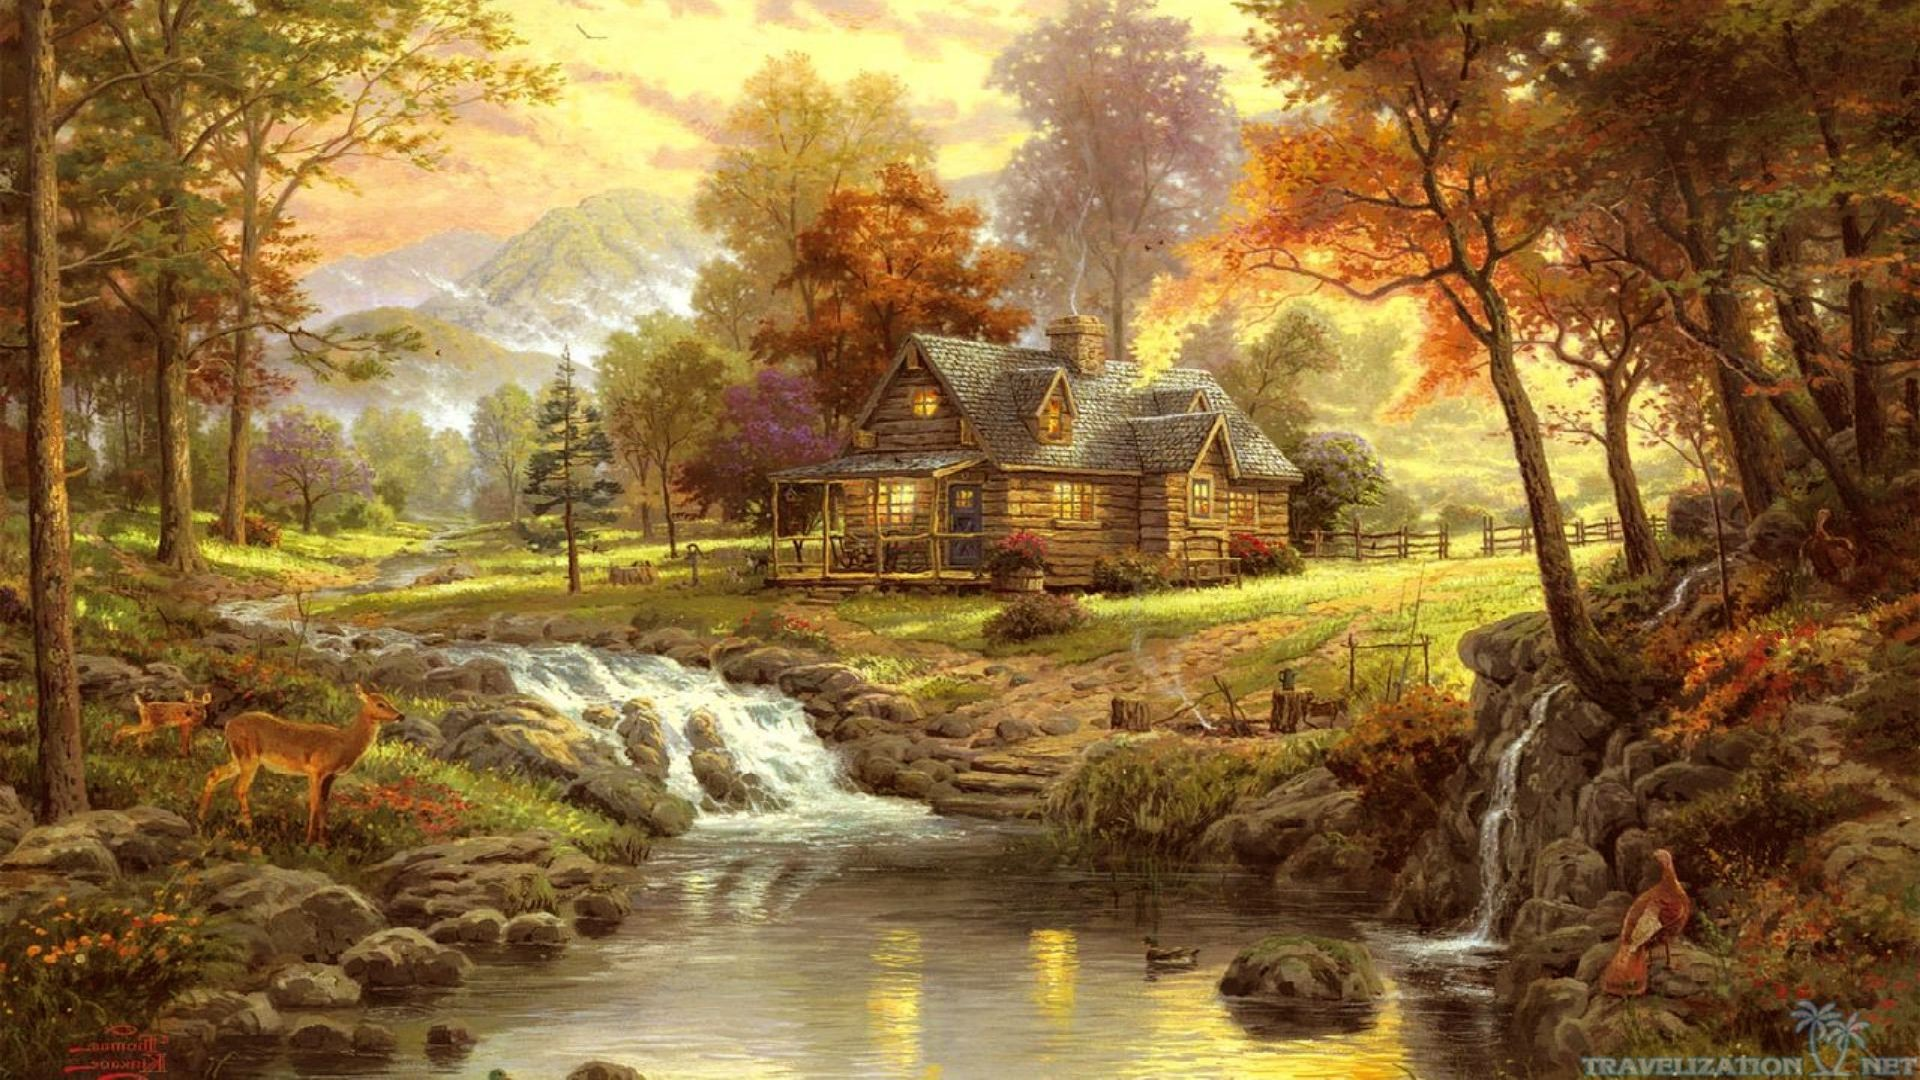 2560x1600 Thomas Kinkade wallpapers hd Â« Awesome Wallpapers